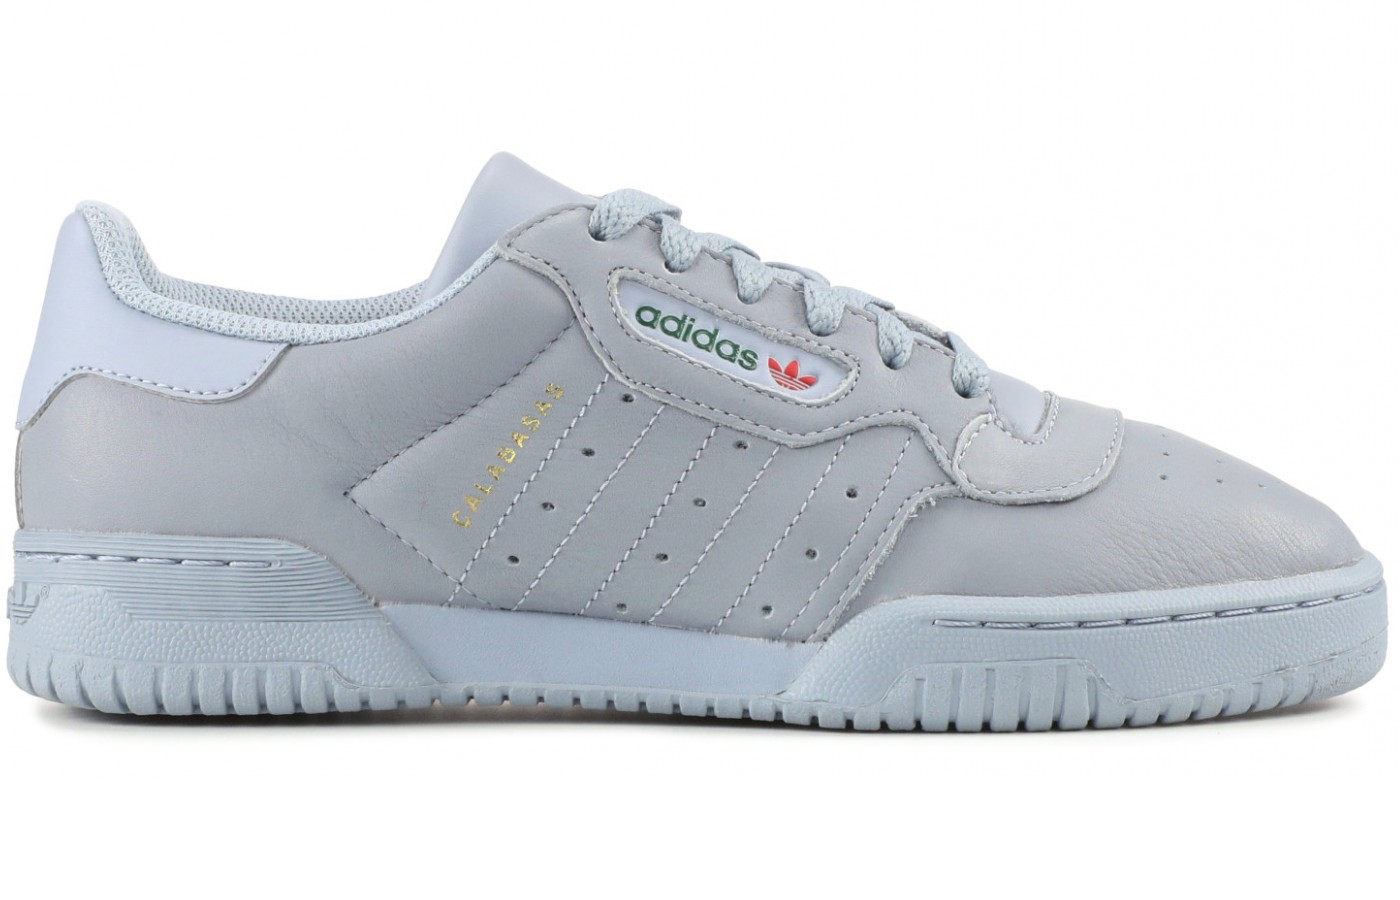 4767fe5b4a9af Adidas Yeezy Powerphase Reviewed   Tested in 2019